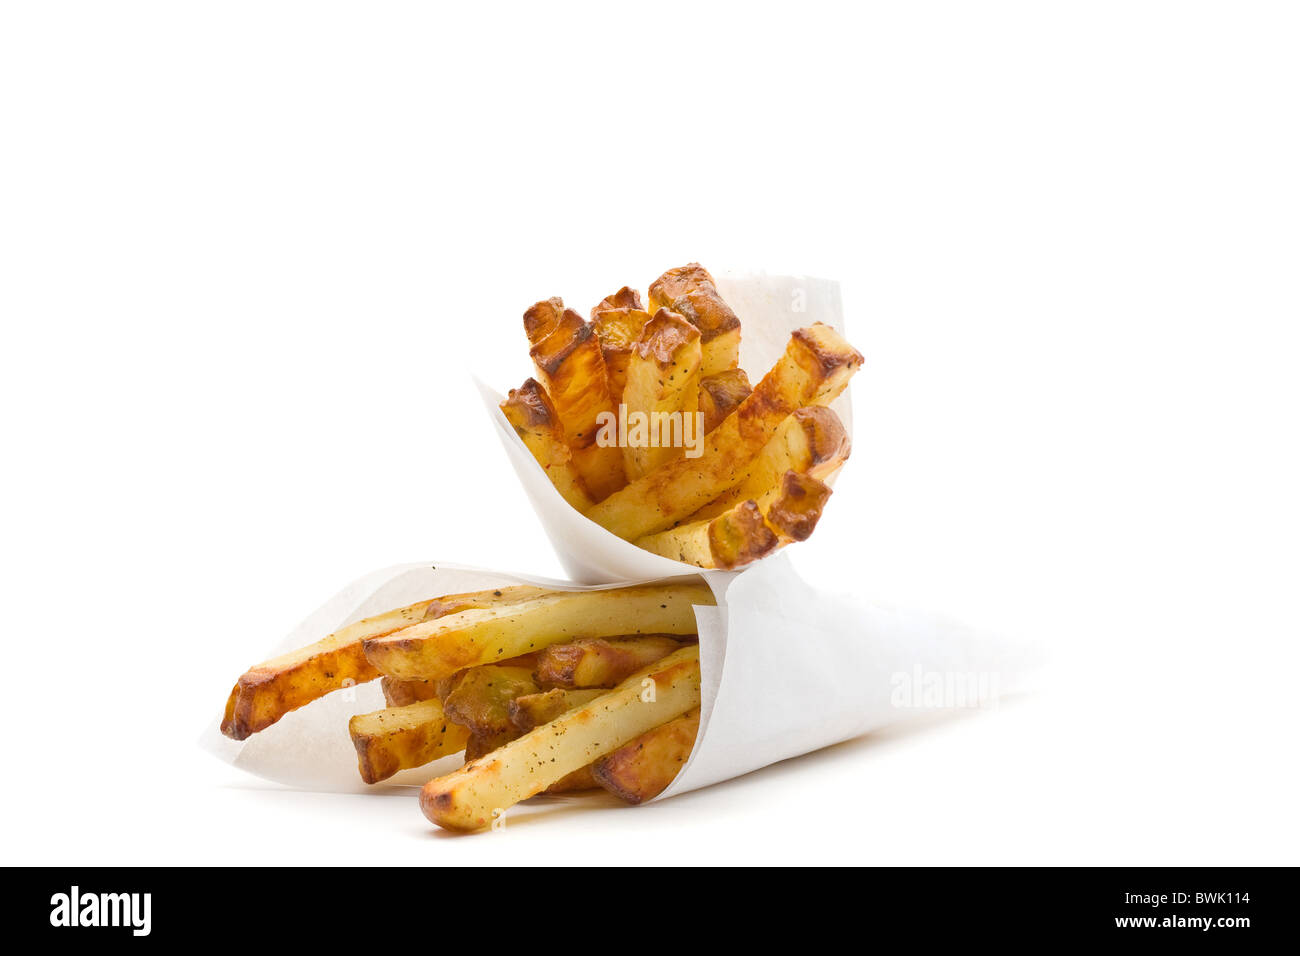 Two packs of home made french fries over white background - Stock Image